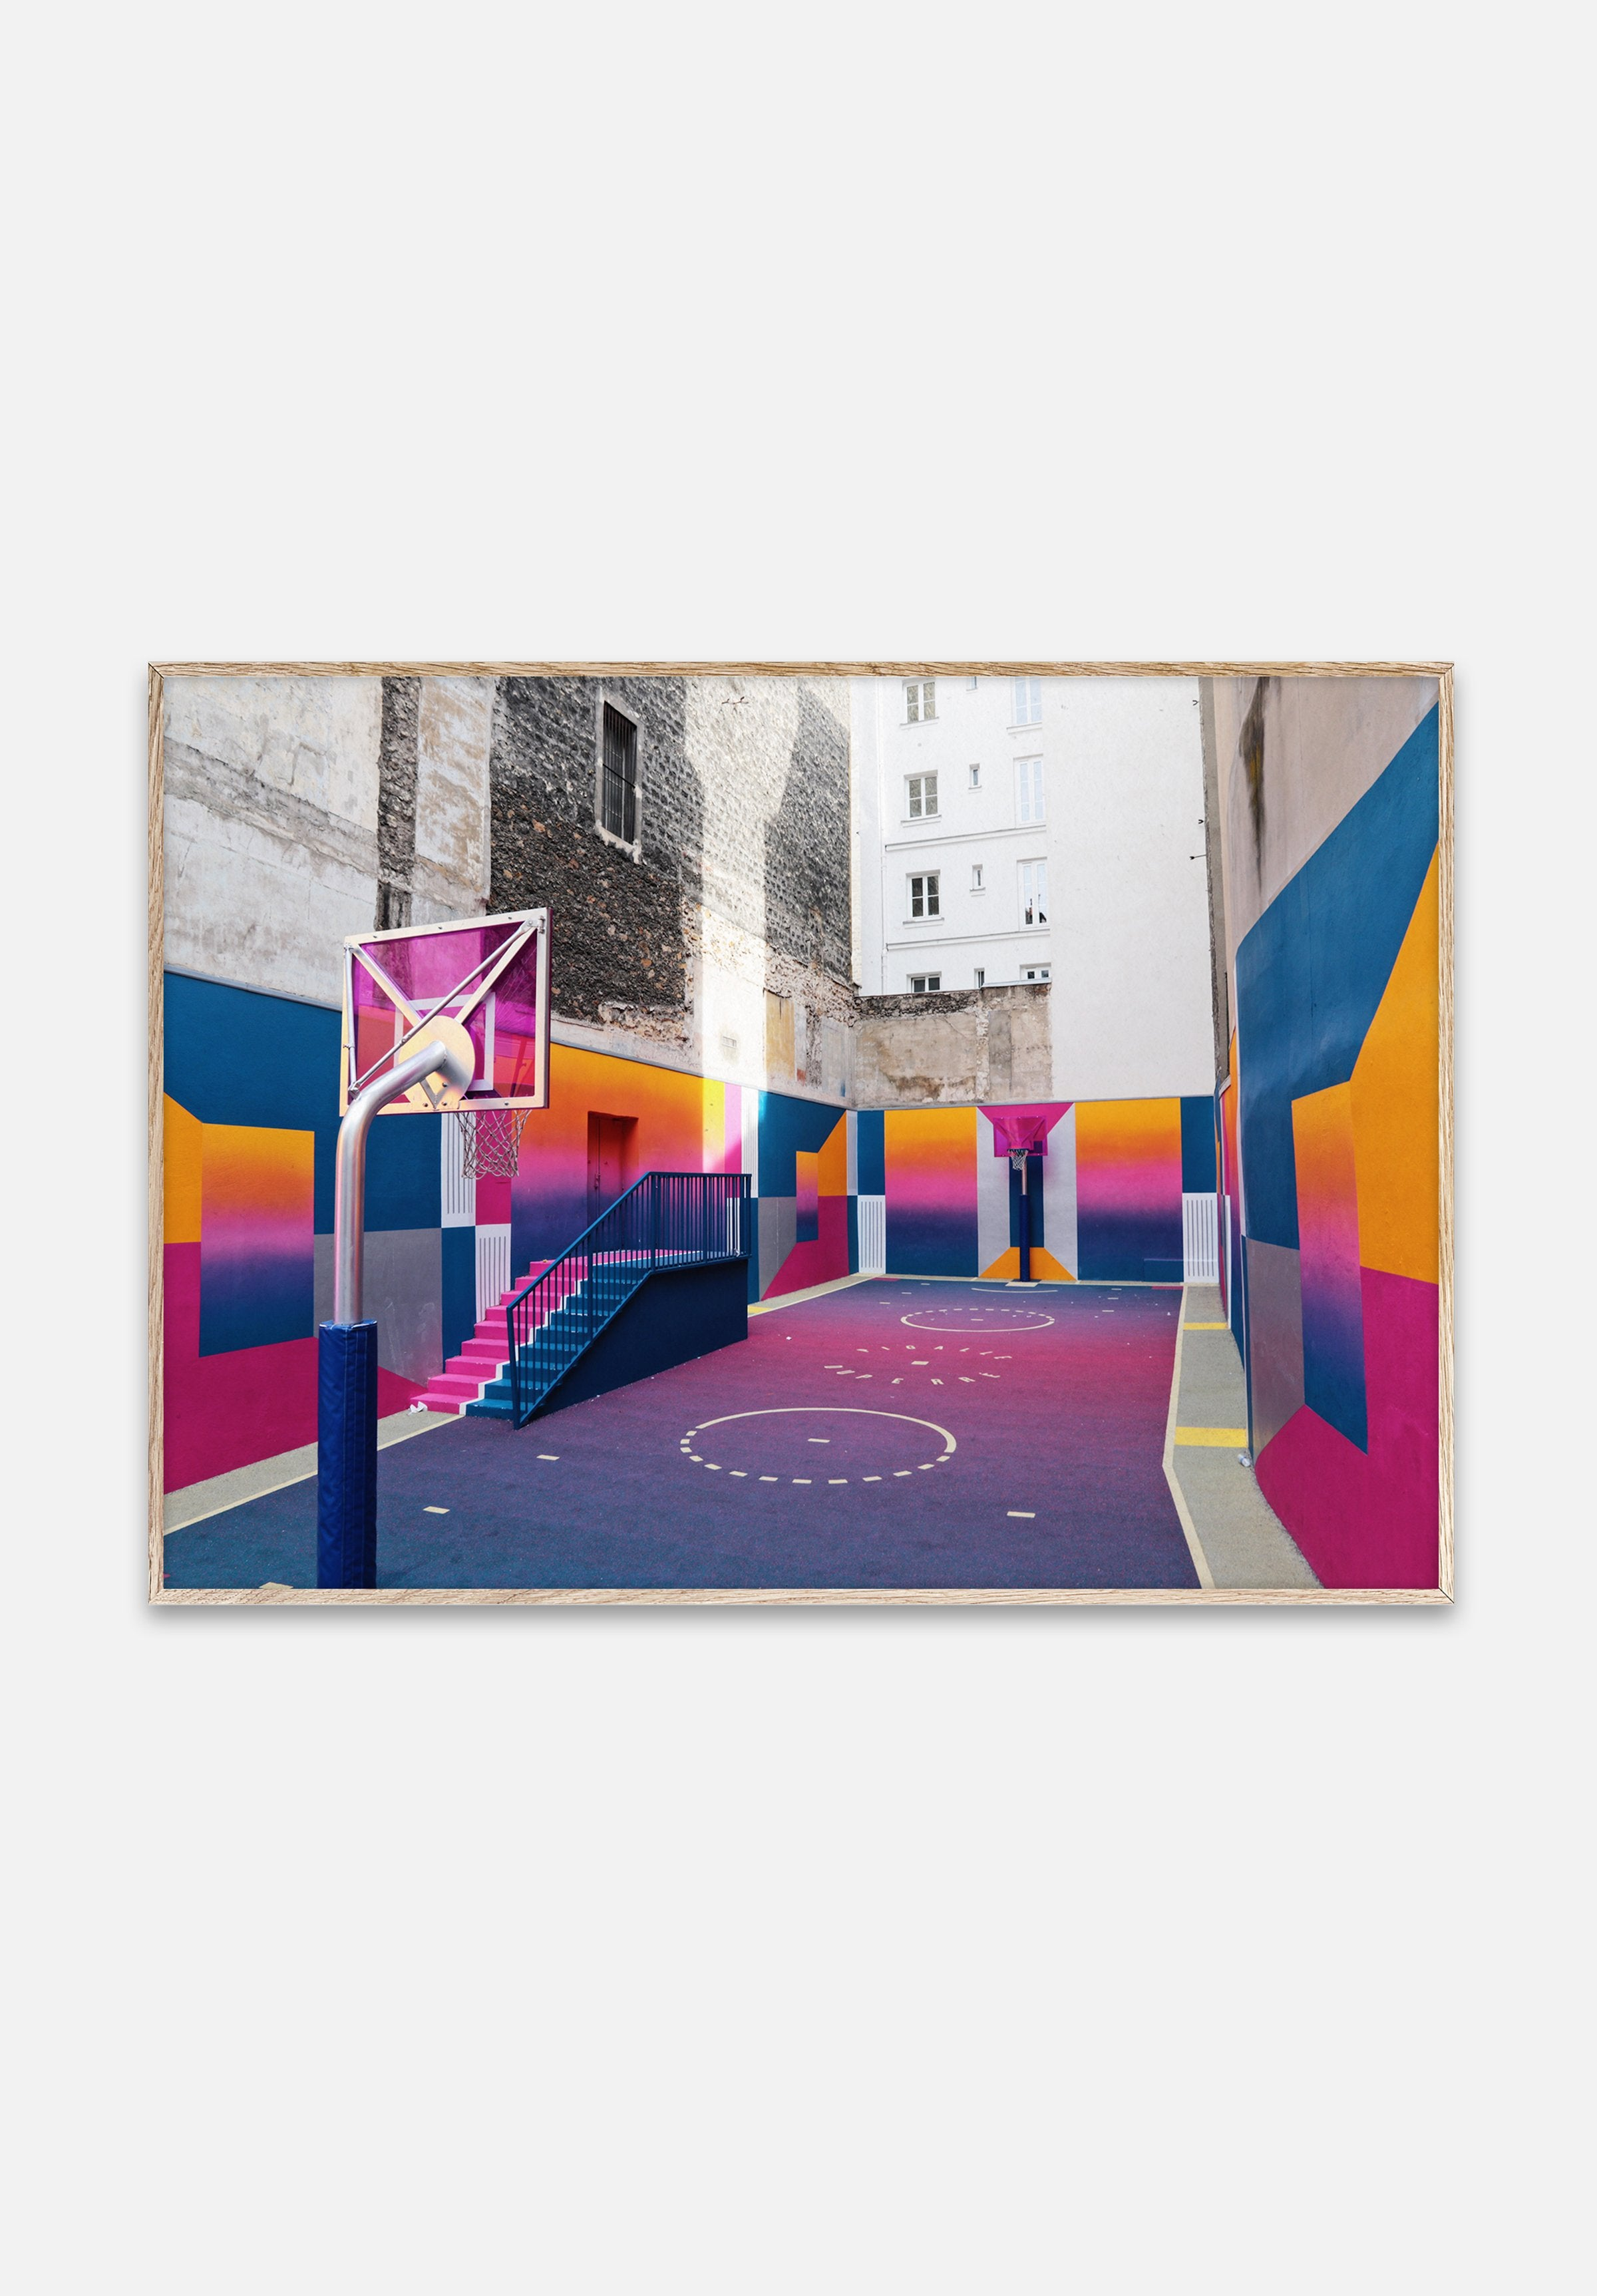 Cities Of Basketball 08 — Paris-Kasper Nyman-Paper Collective-40x30cm-Average